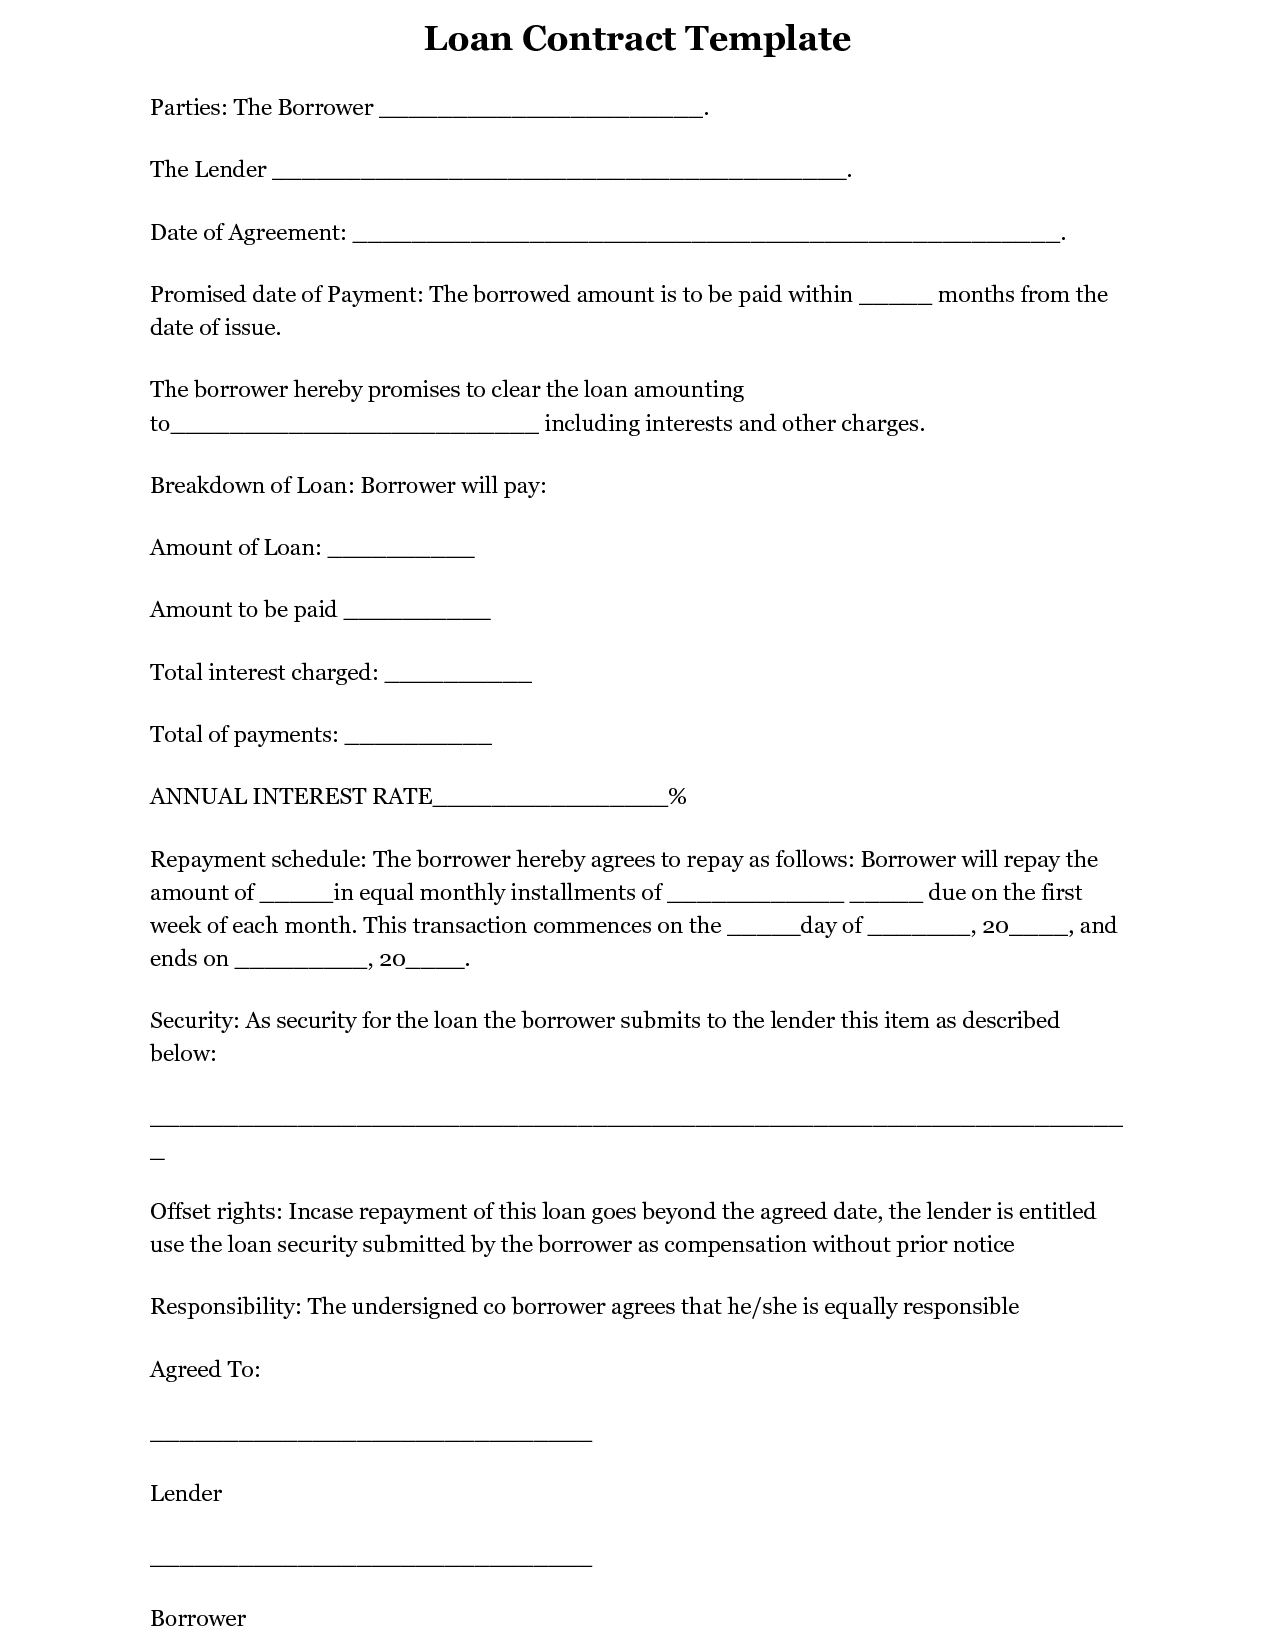 Simple Interest Loan Agreement Template | Koco Yhinoha   Simple Loan  Contract  Private Agreement Template